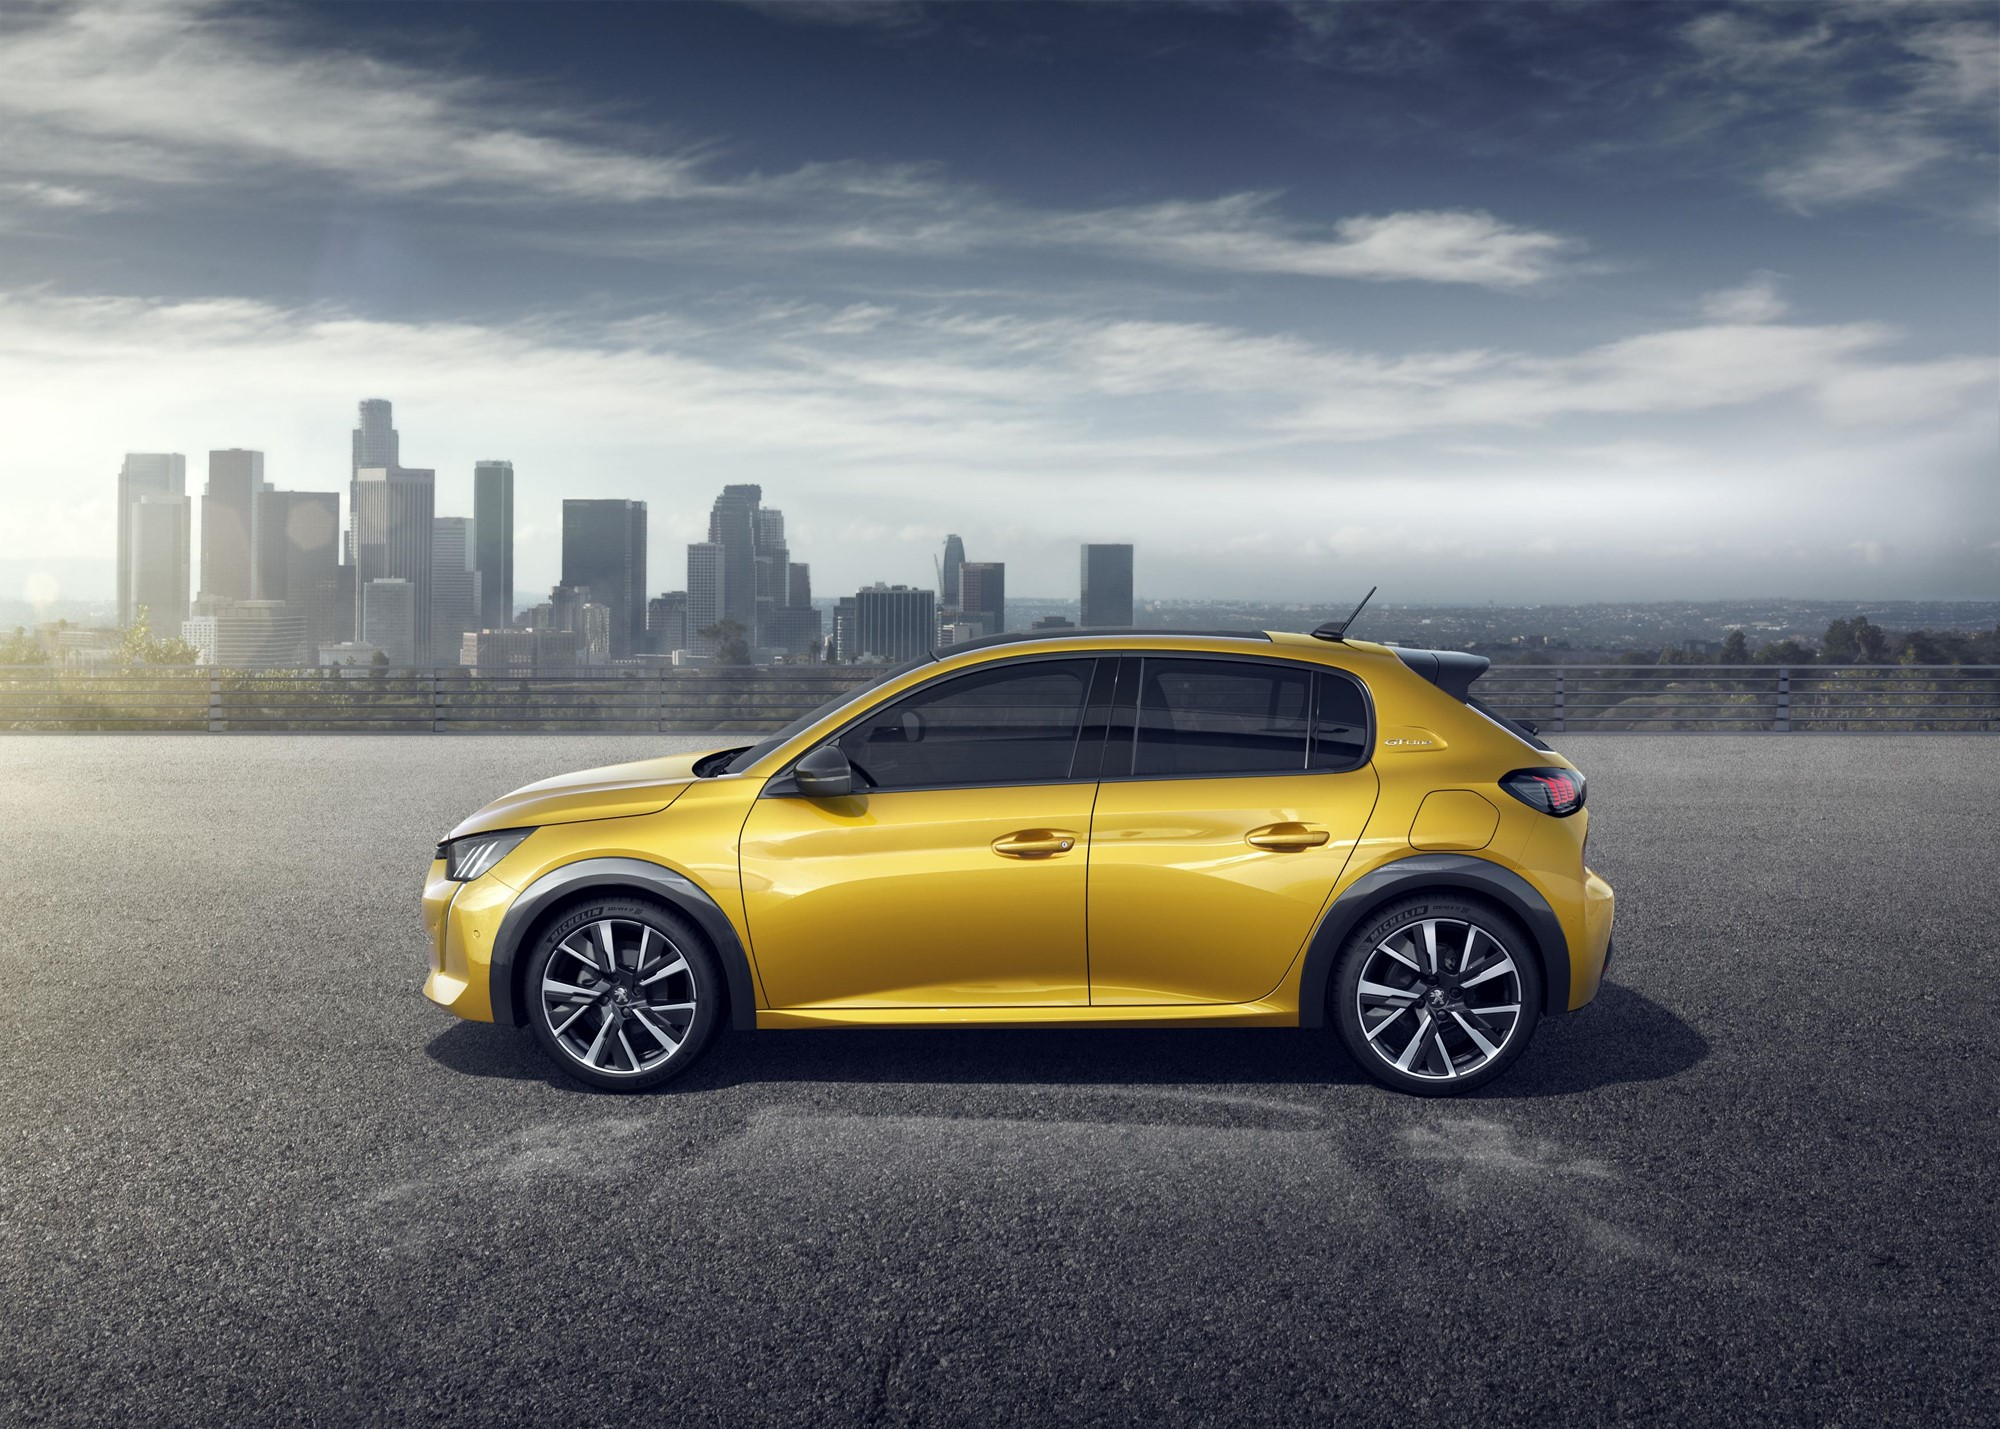 New Peugeot 208 Revealed With Fully-electric Drivetrain